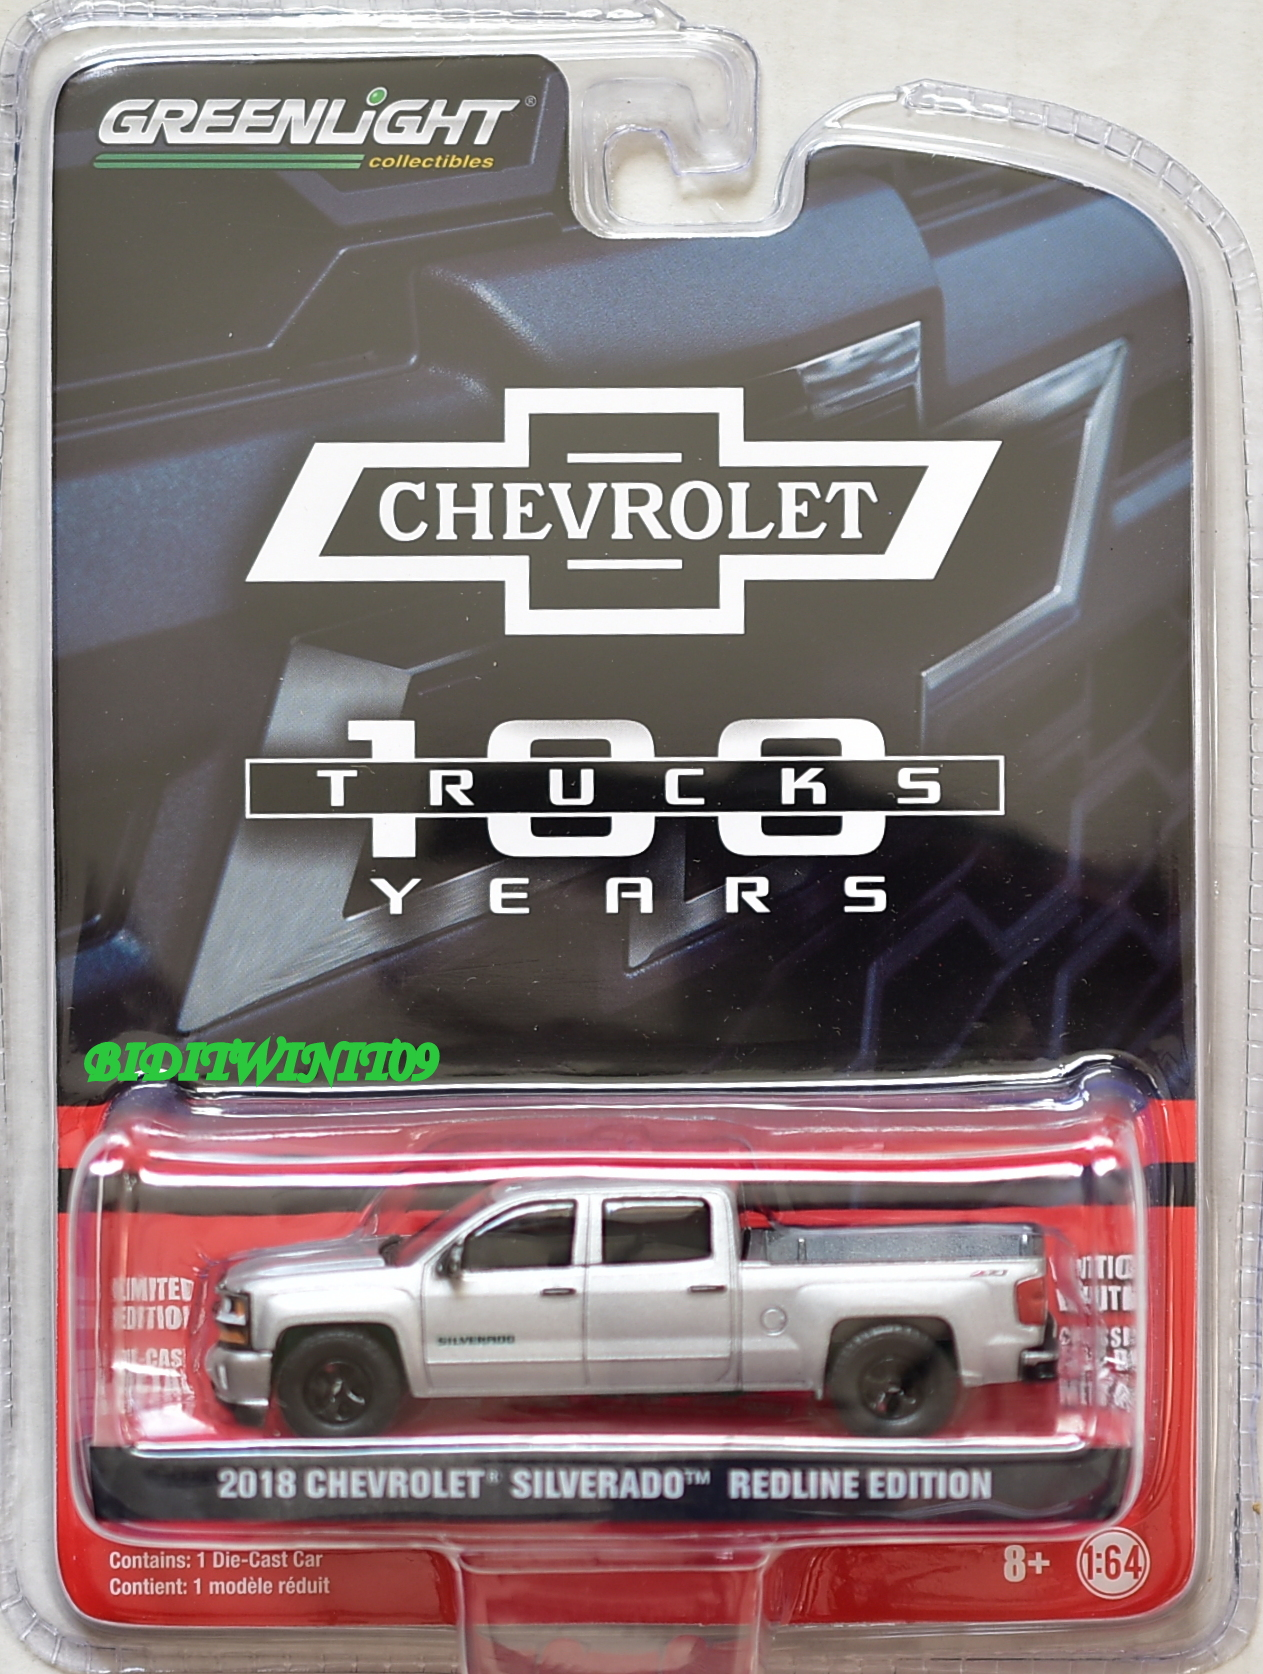 GREENLIGHT ANNIVERSARY 2018 CHEVROLET SILVERADO REDLINE EDITION GREEN MACHINE